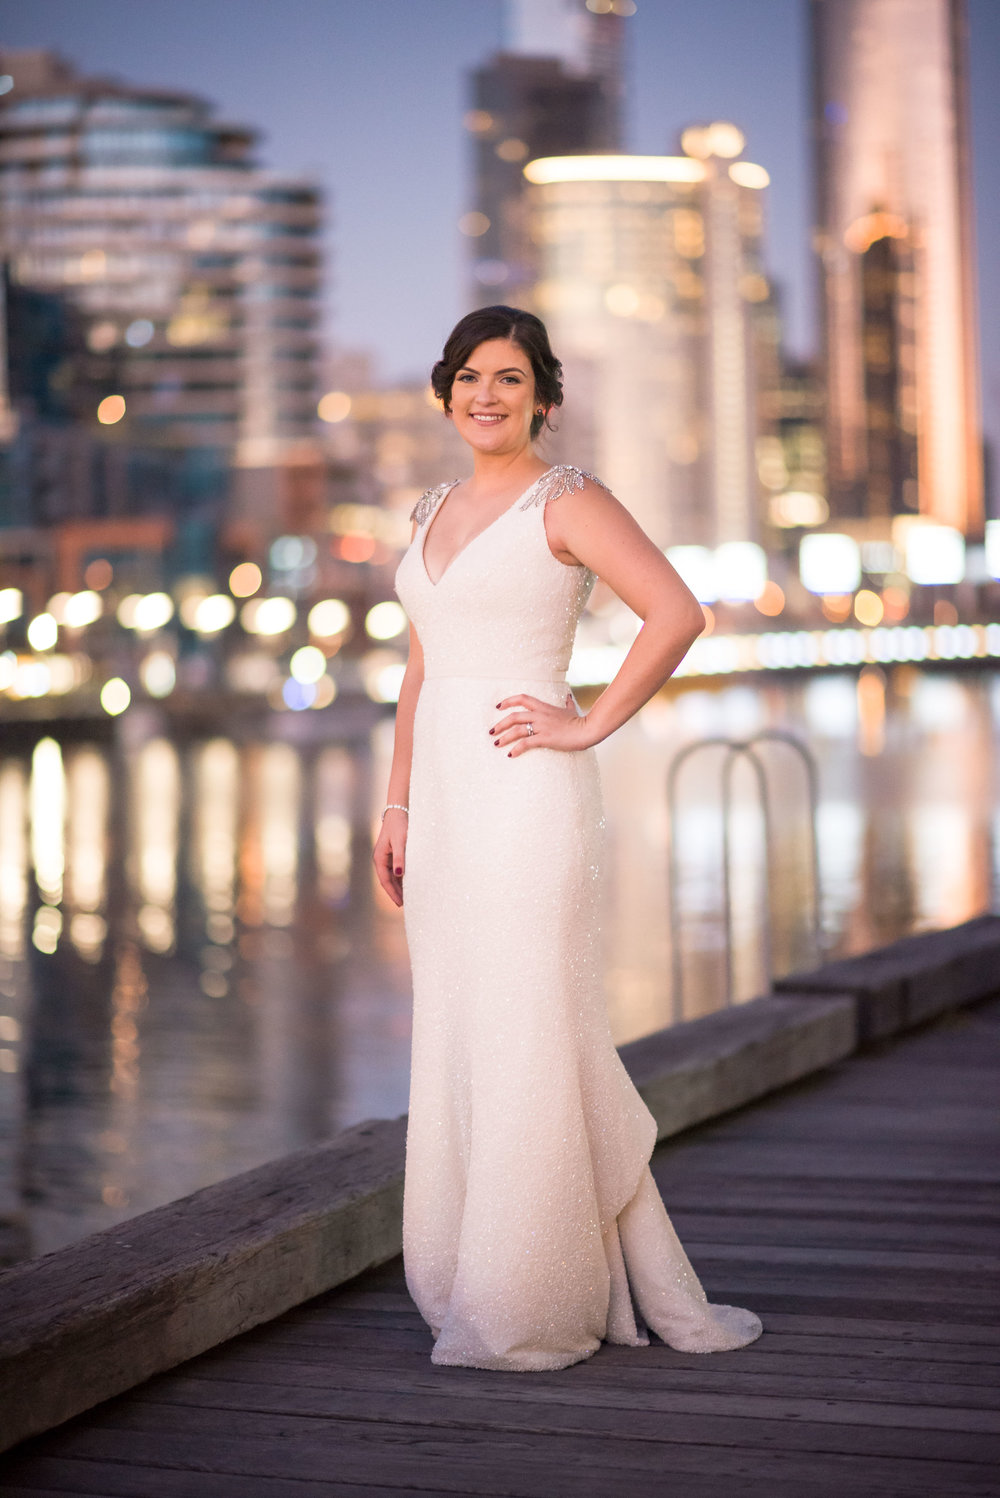 Ria & Cameron Pace Melbourne Wedding Photography - 17th March 20